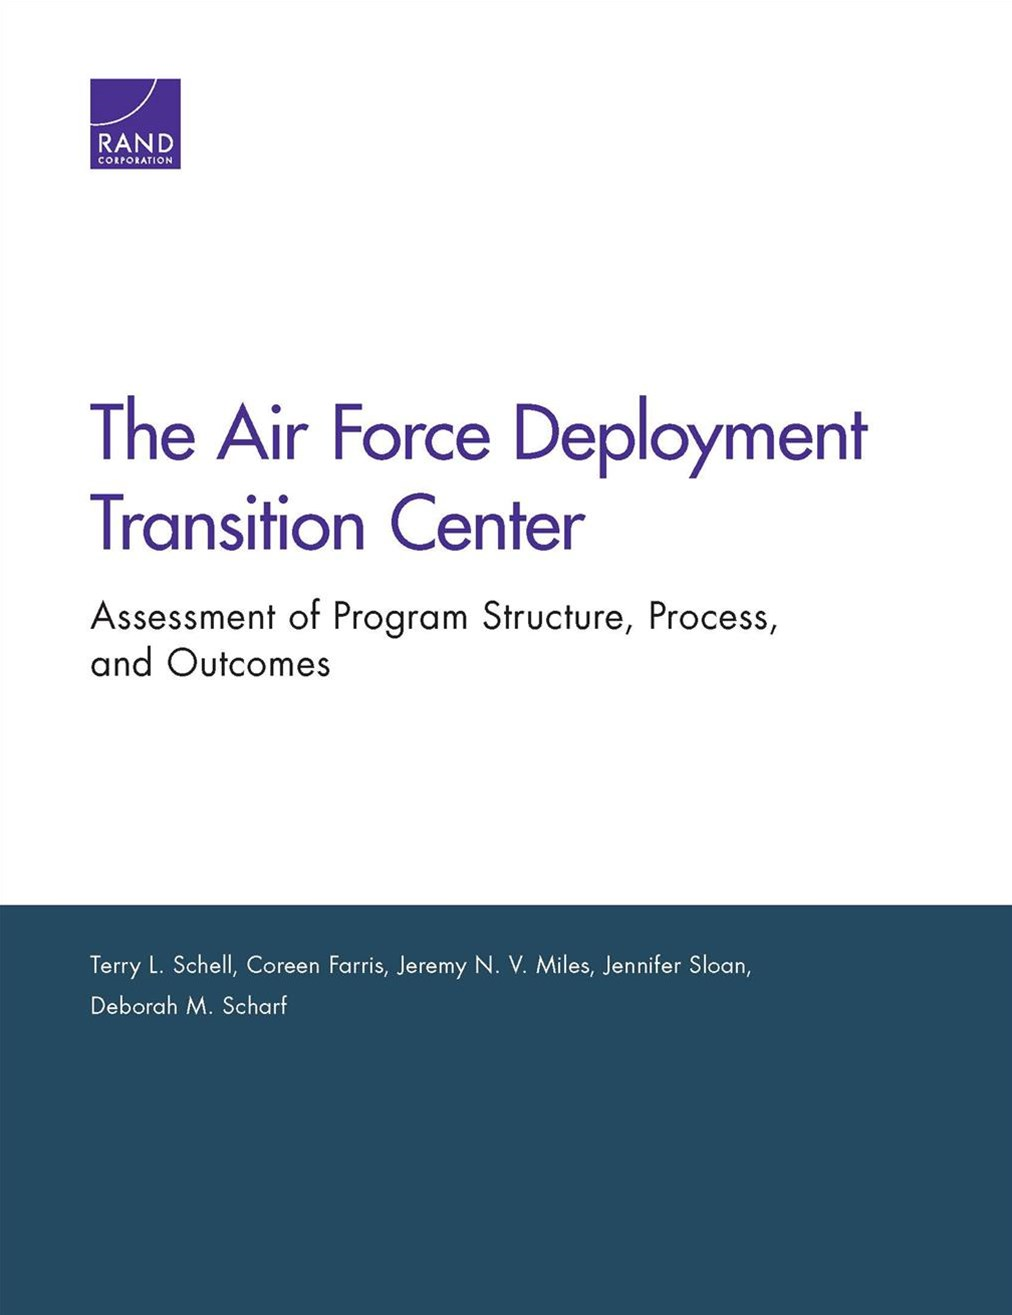 The Air Force Deployment Transition Center